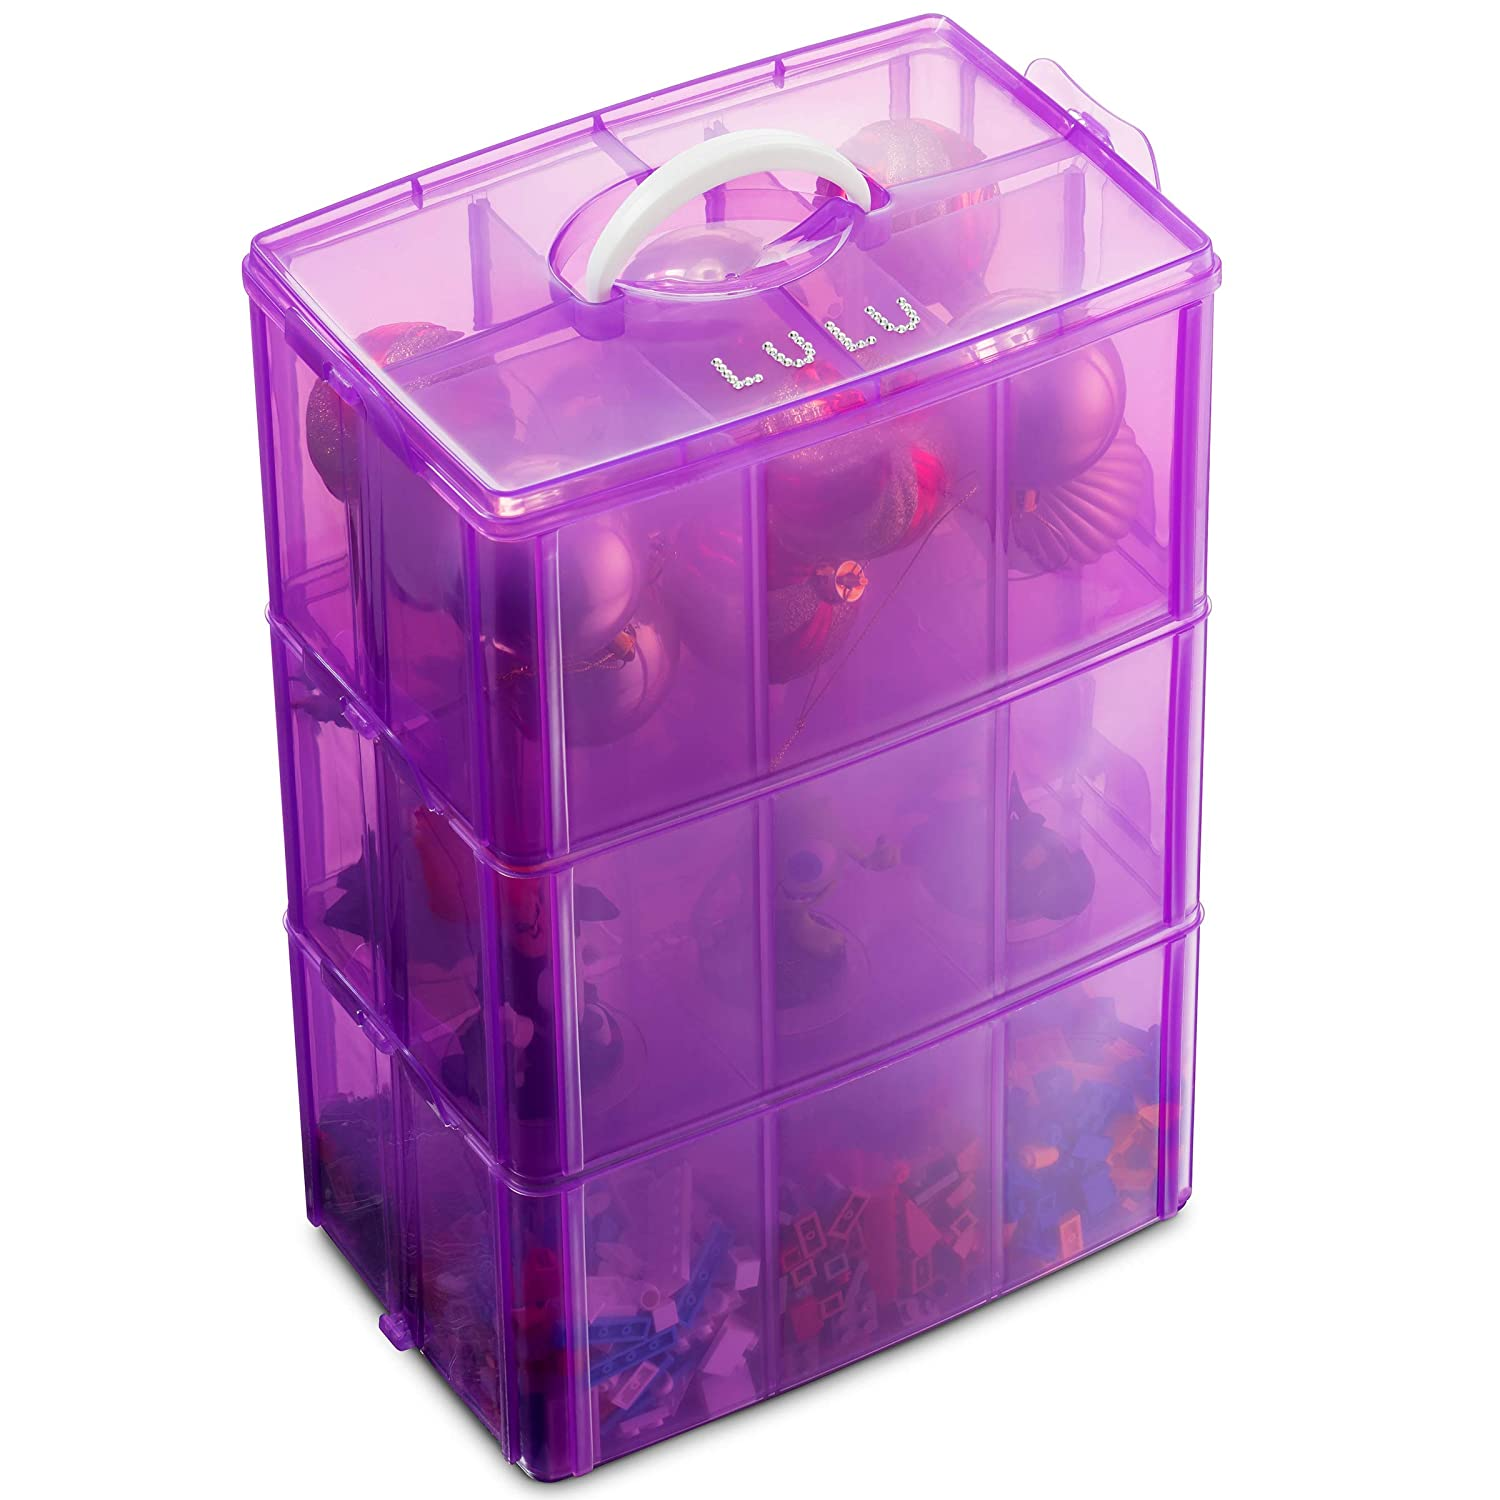 B07XYDWCZ8 LifeSmart Medium Size Christmas Ornaments Storage Stackable Compatible with Lego Dimensions, Characters, LOL Dolls and More 81q32B6DiQTL